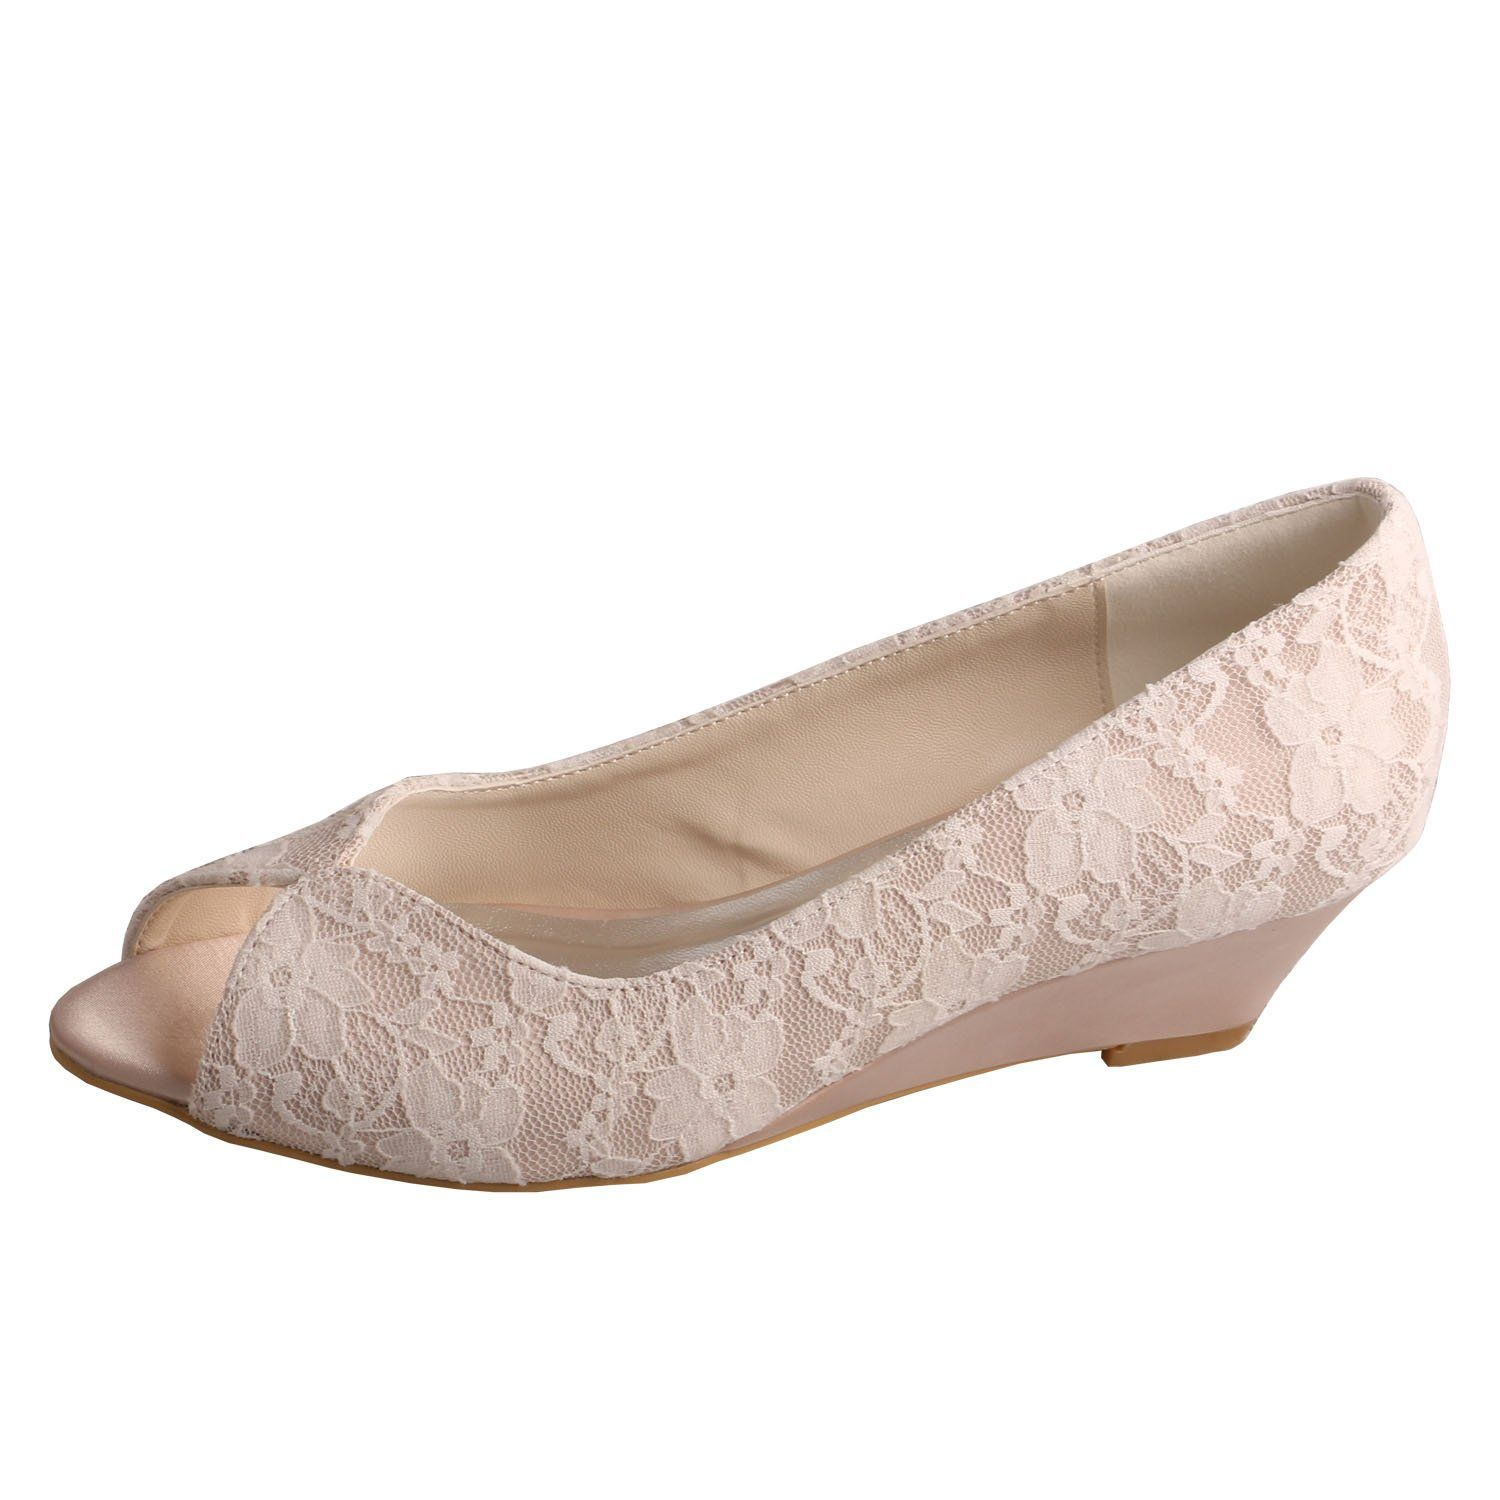 Attractive Amazon.com: Peep Toe Low Wedge Heel Nude Lace Ladies Bridal Shoes Wedding:  Shoes